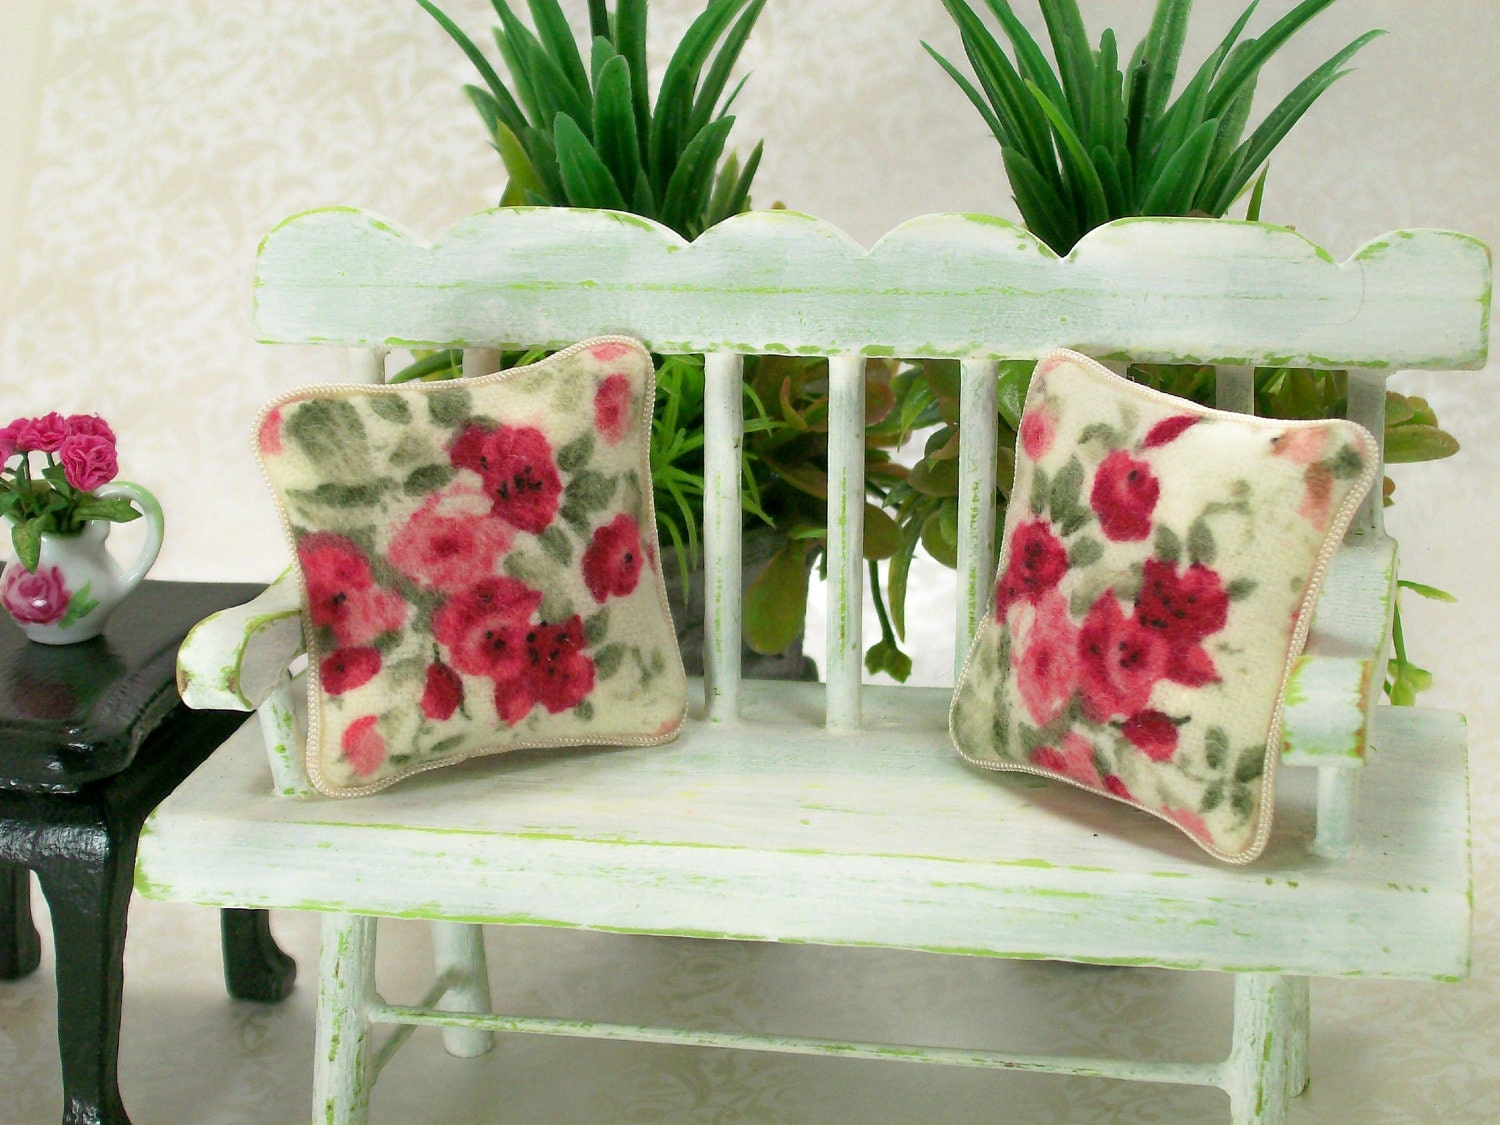 Dollhouse Miniature Pillows Cabbage Roses Pink Red Rose Victorian Shabby Chic Floral Flowers Throw Toss Cushions One Inch Scale - dalesdreams